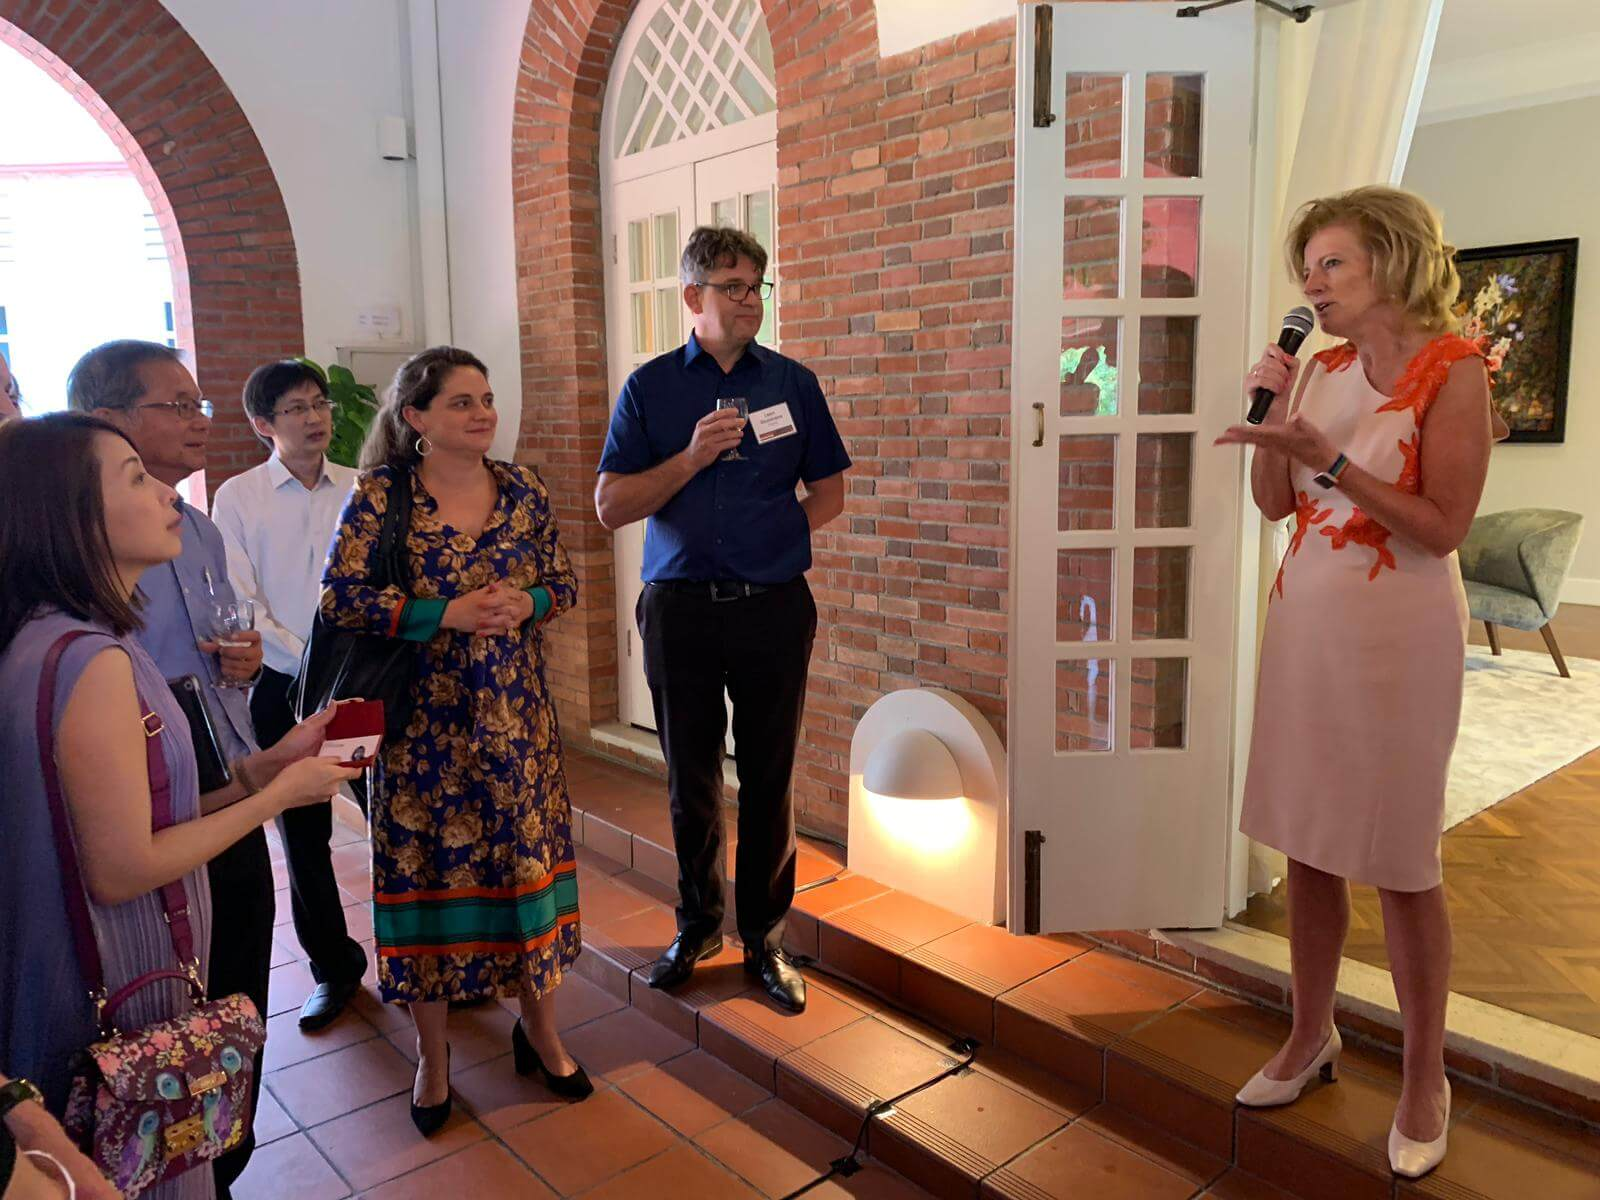 #RotterdamSingapore #CleanTech mission 2019, day 2: delegation welcomed by Ms. Margriet Vonno, Ambassador of the Netherlands to Singapore and Brunei.